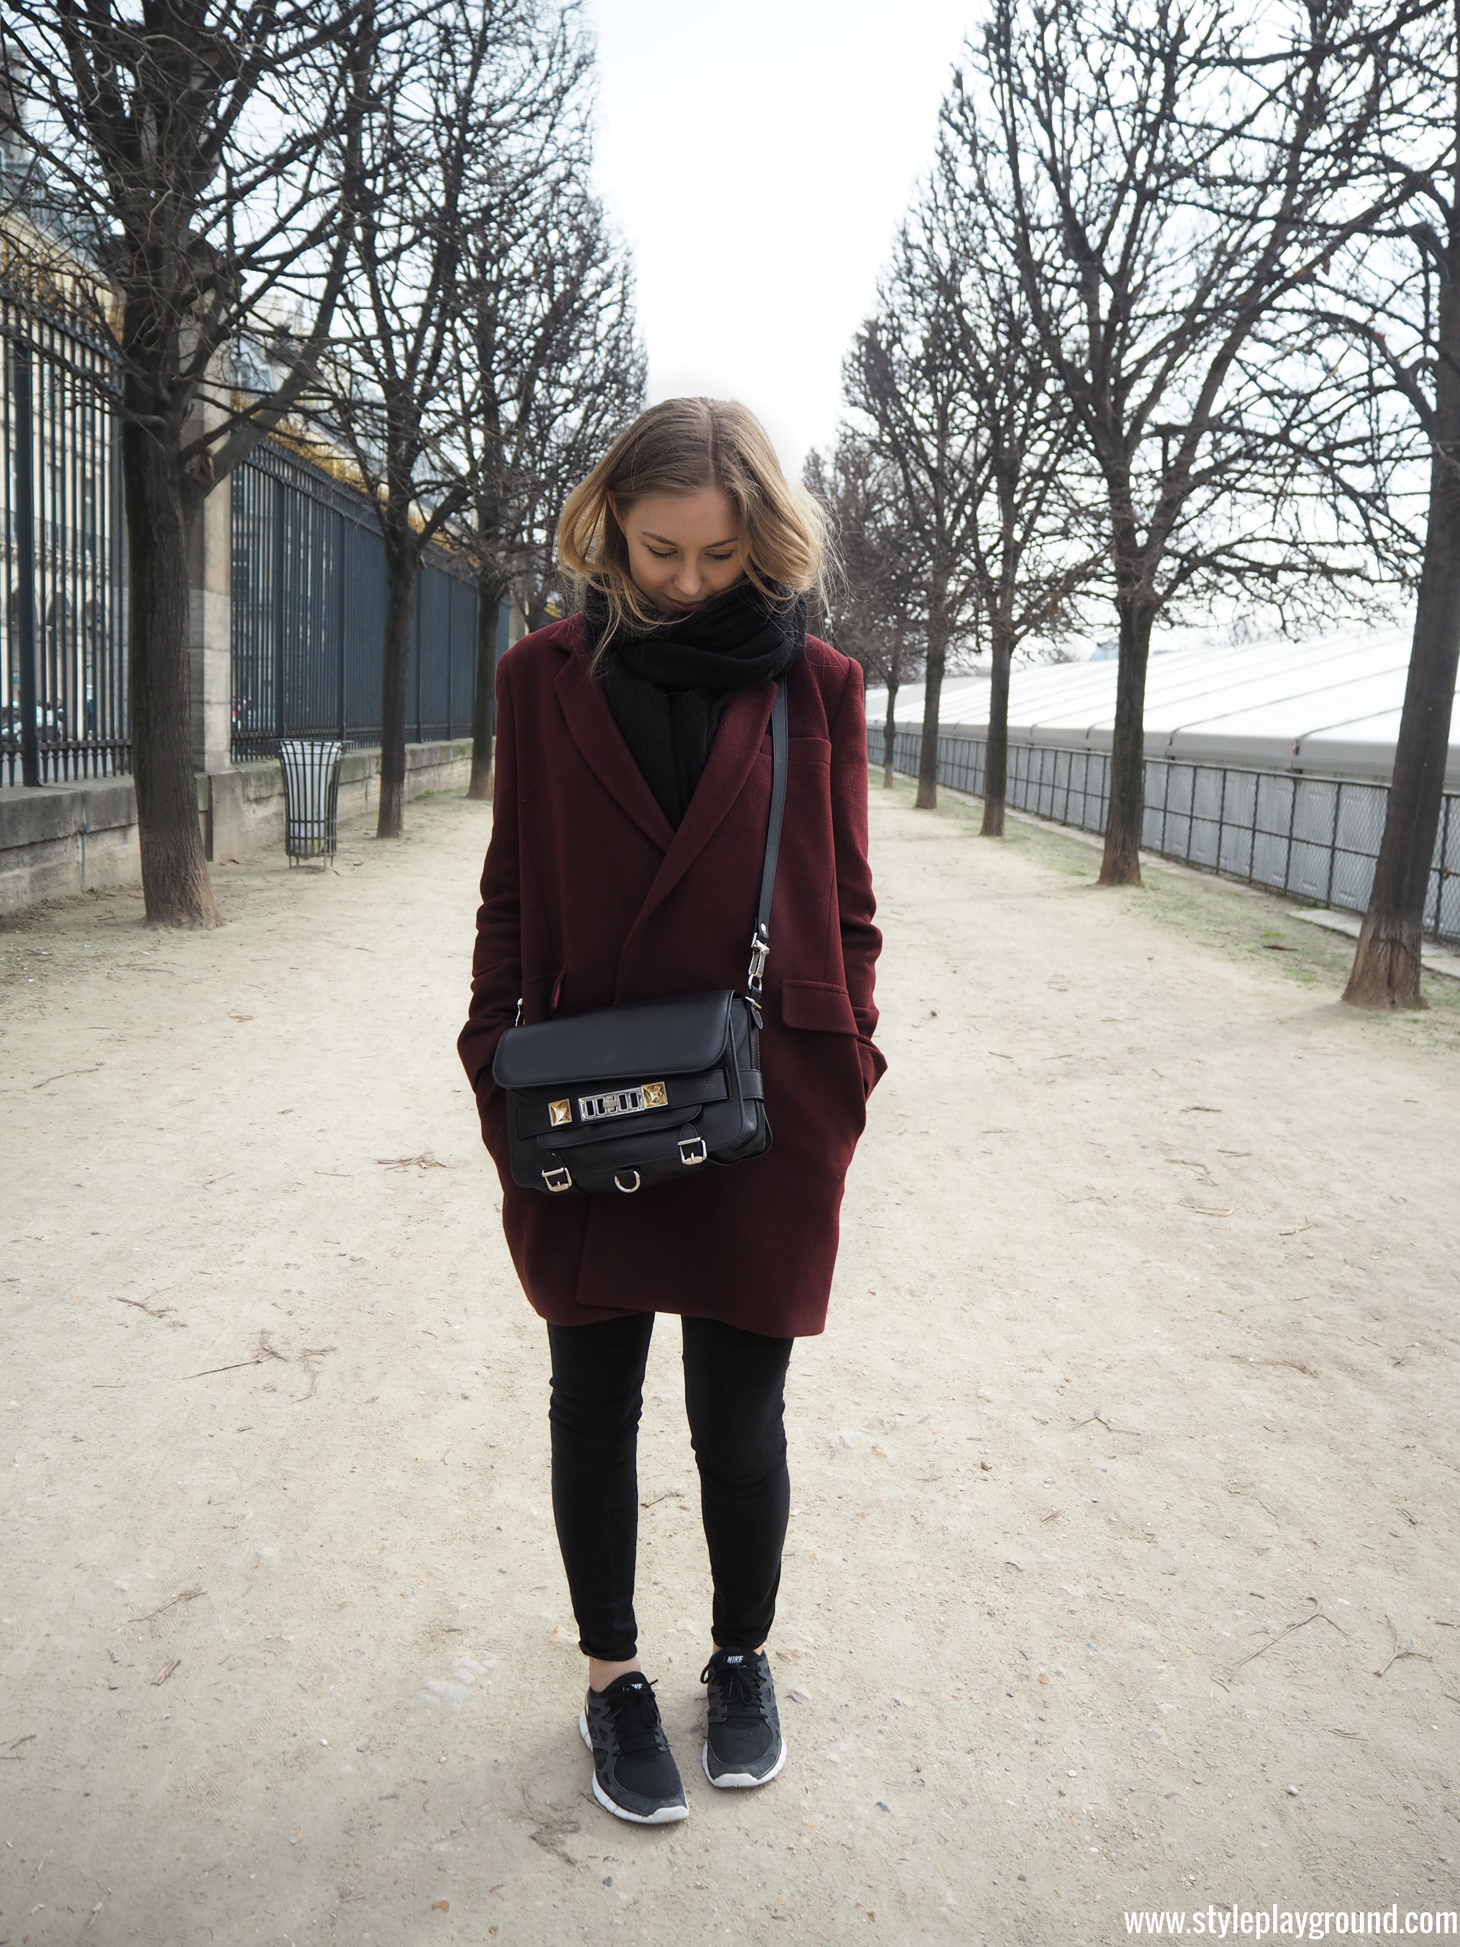 Axelle Blanpain of Style playground is wearing an Essentiel coat, American Eagle jeggings, Nike Free run sneakers & Proenza Schouler PS11 bag